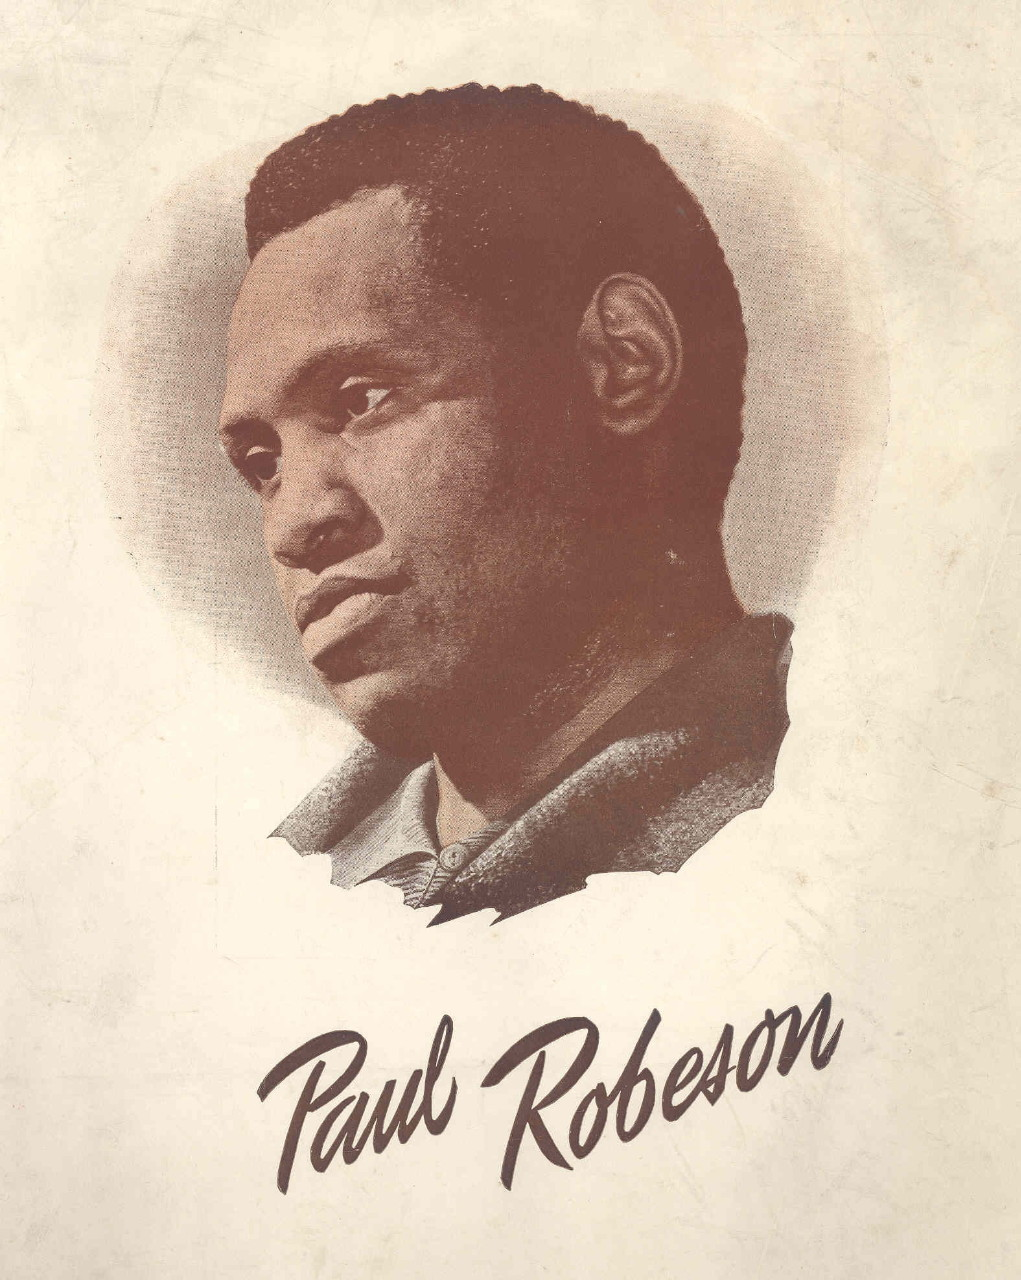 a biography of ira alridge and his role as shakespearean actor The first black actor to play many of william shakespeare's leading roles, ira aldridge took 19th-century london by storm when in 1825 he performed othello in the city's docklands.